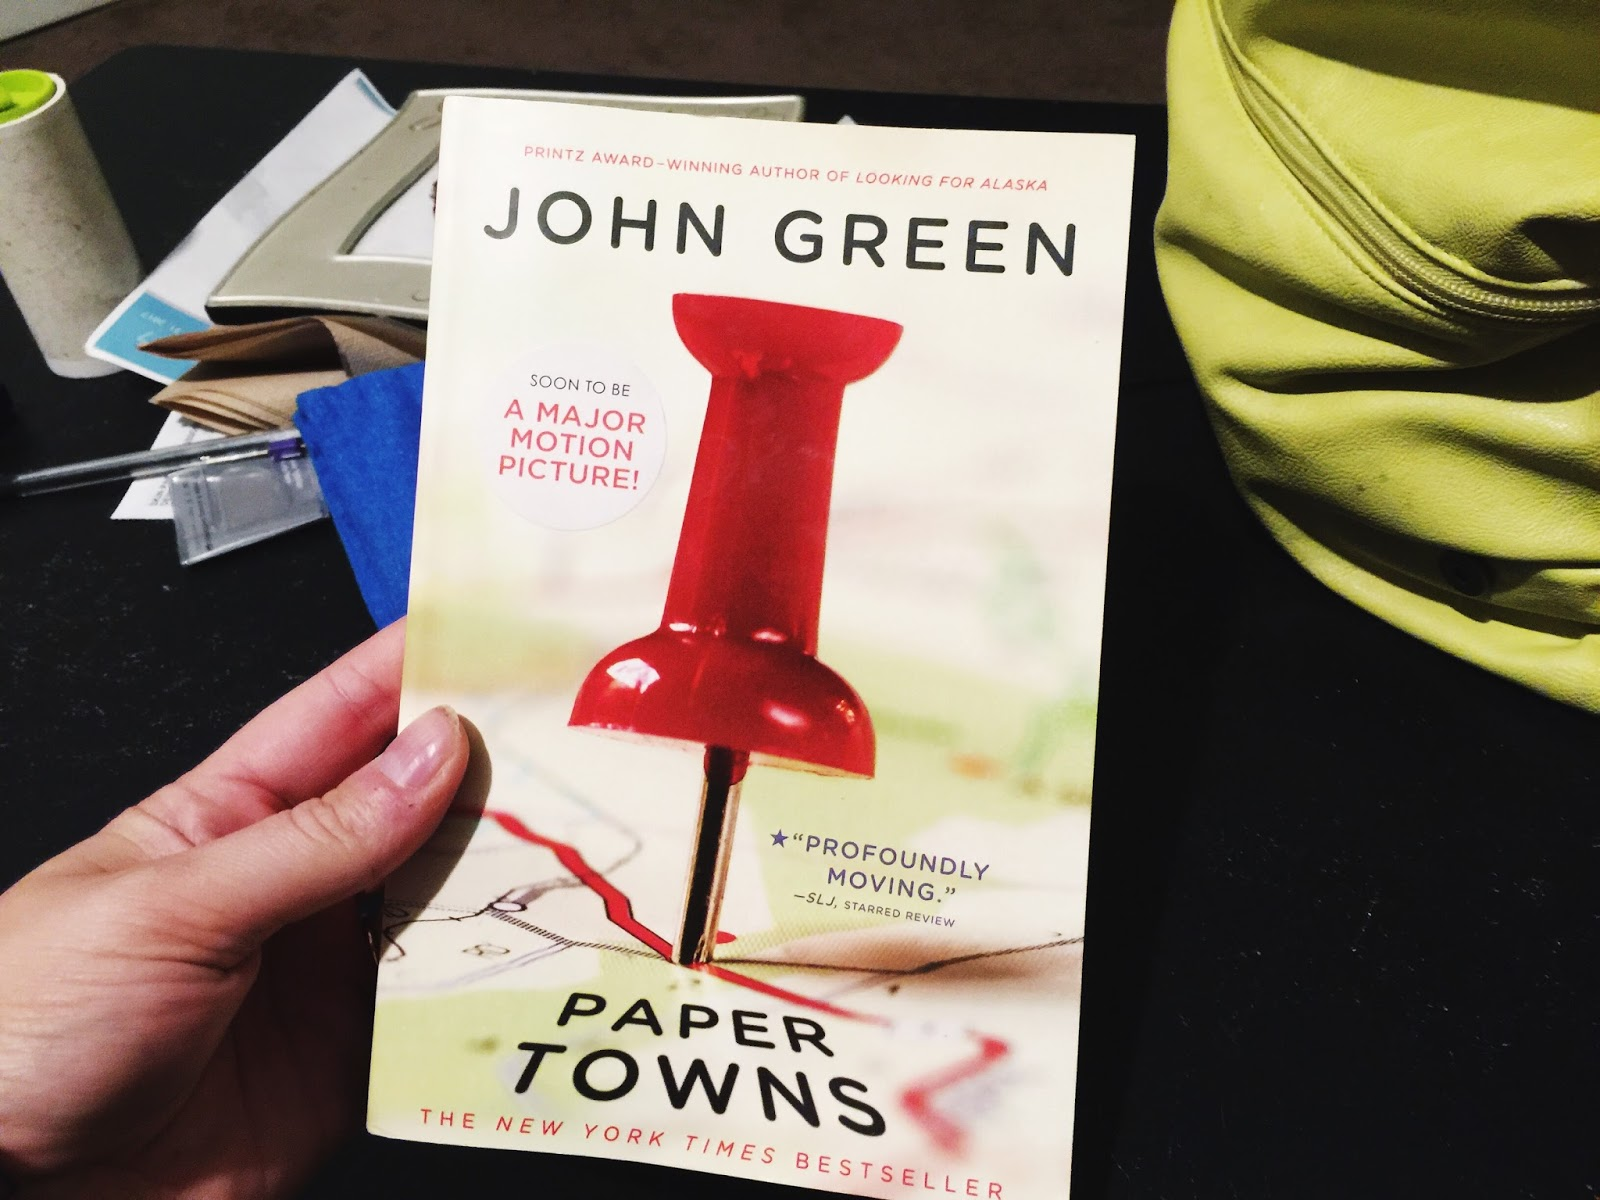 Paper towns by john green review